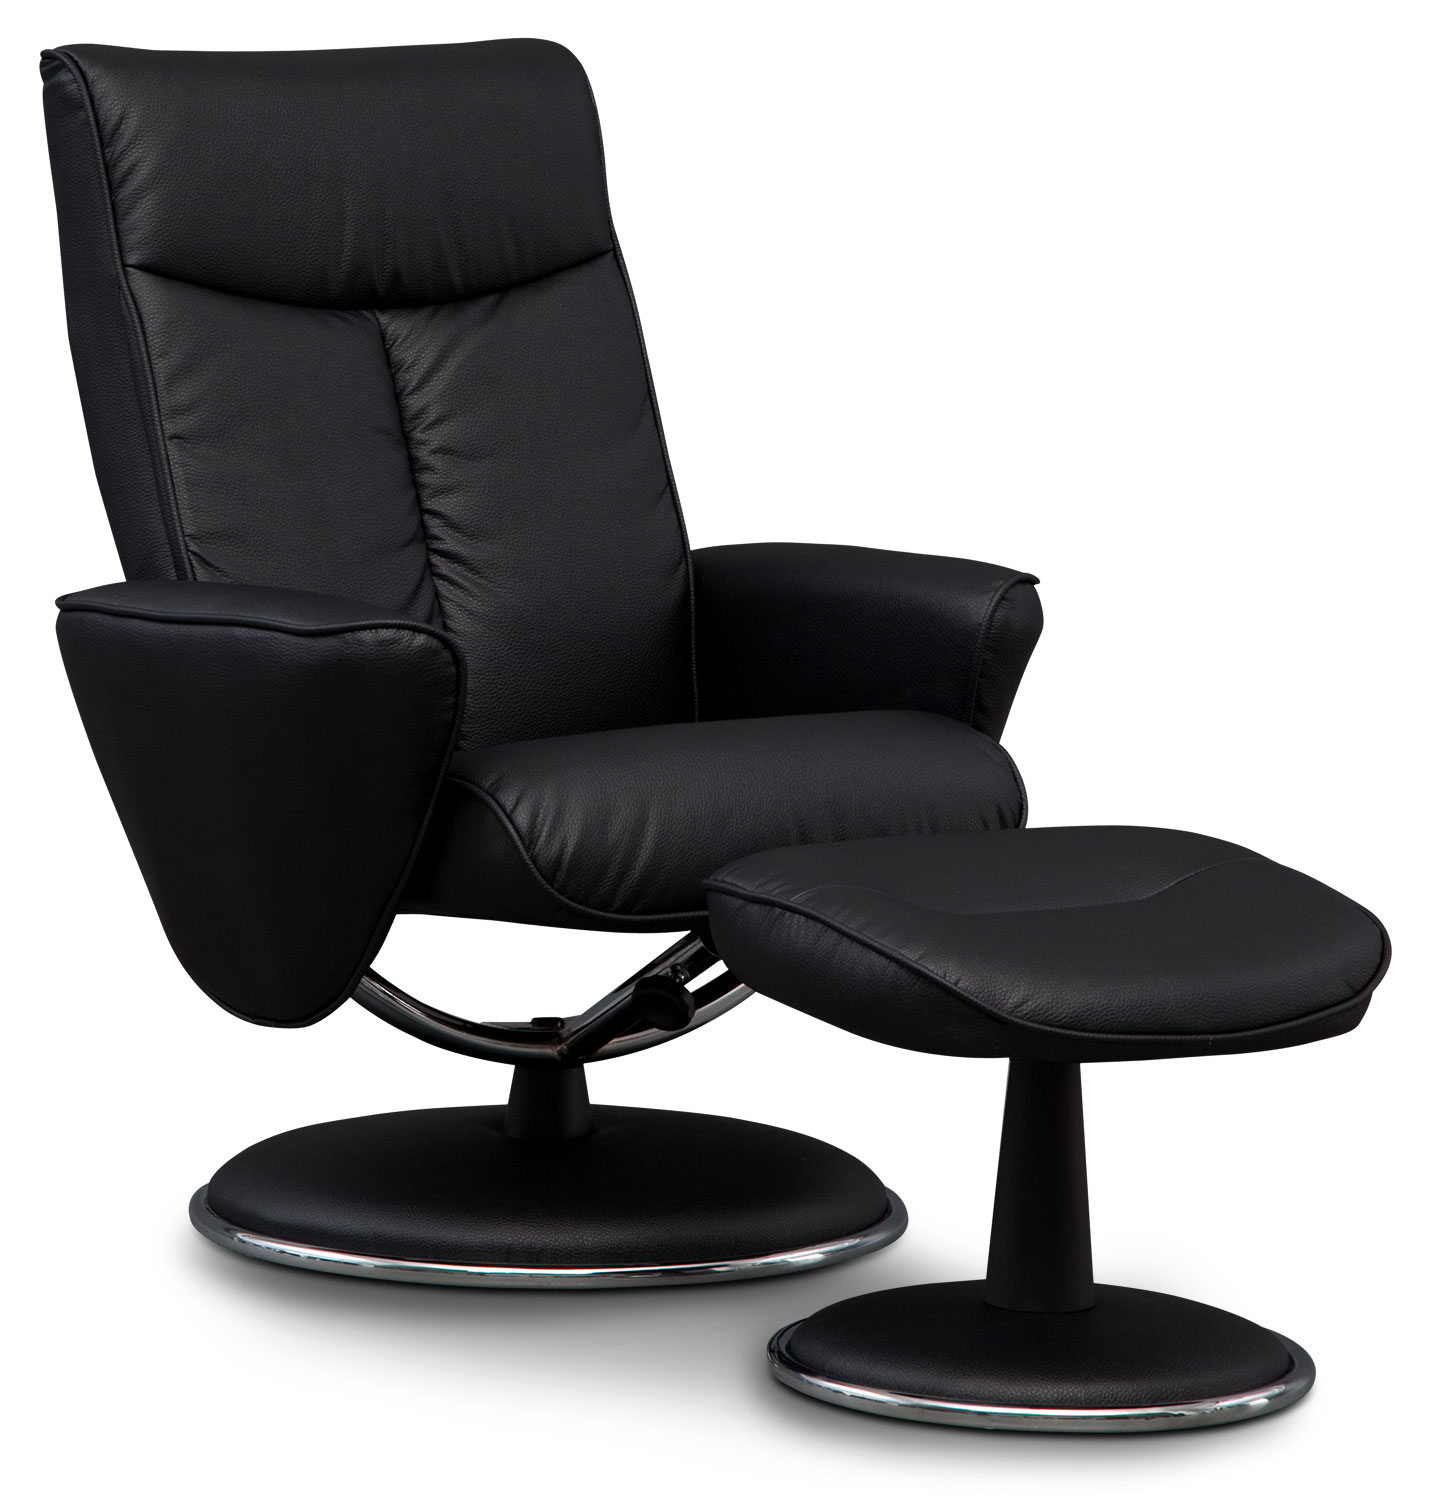 Tracer Reclining Chair and Ottoman - Black